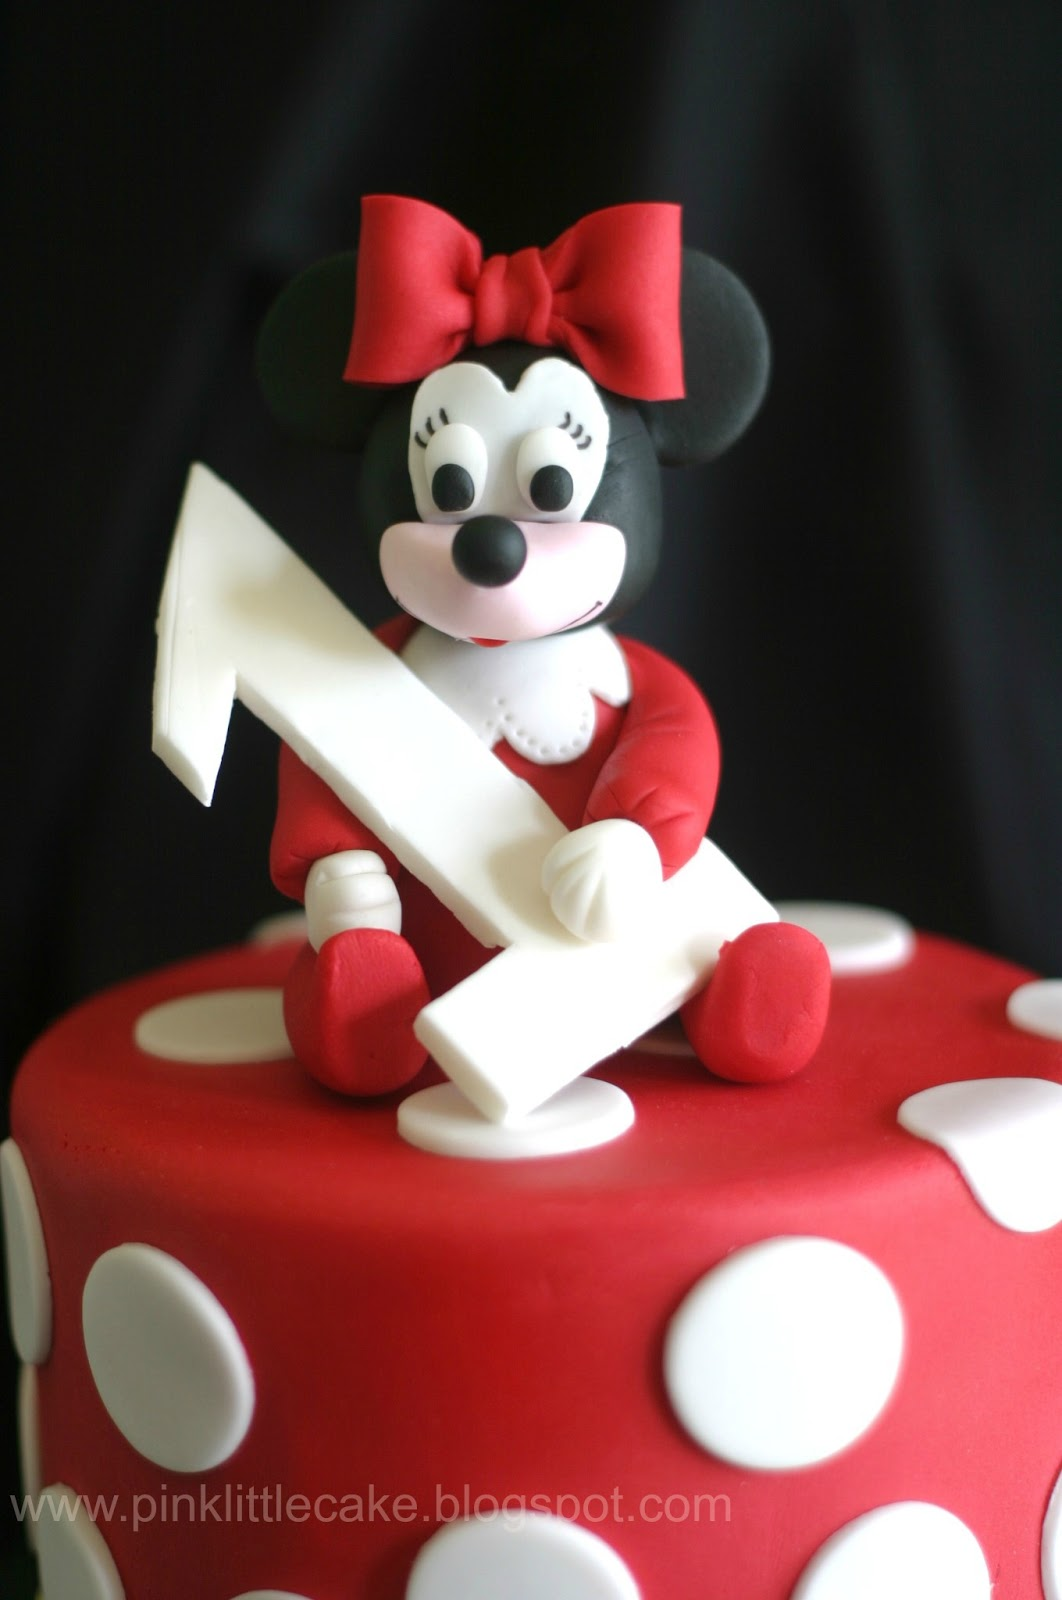 Pink Little Cake Red PJs Baby Minnie Mouse Cake